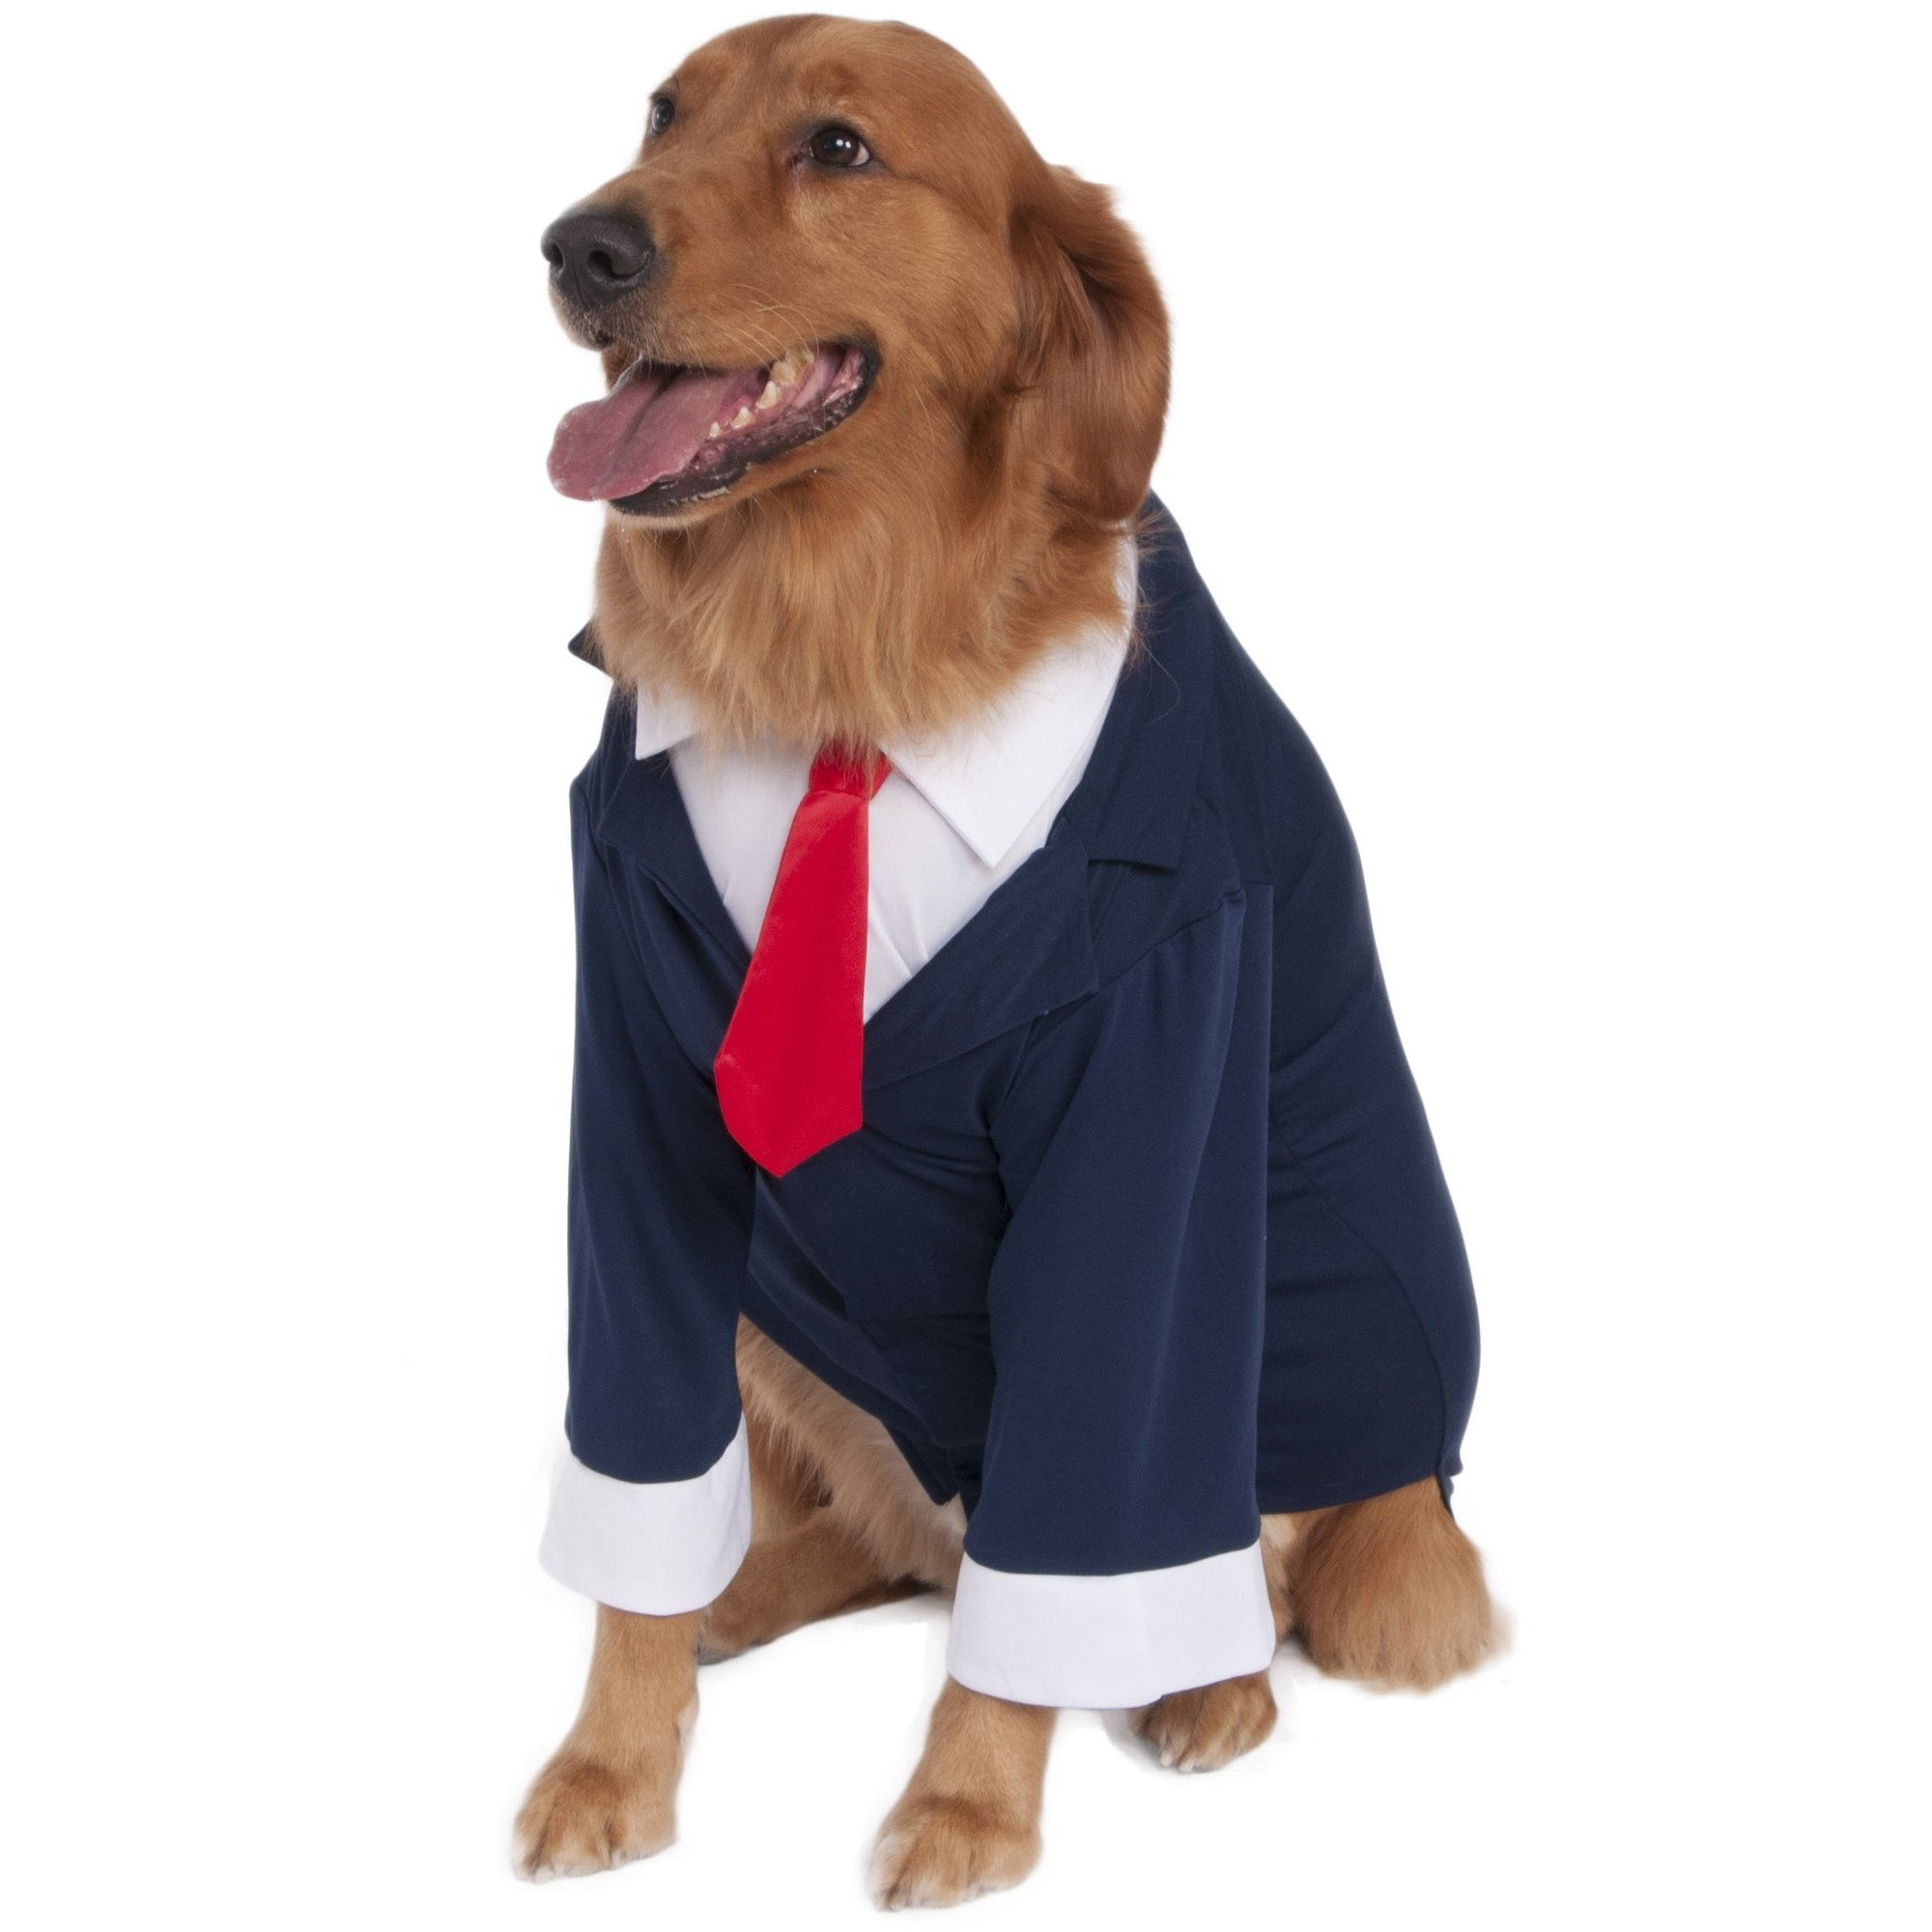 Big Dog Business Suit Costume